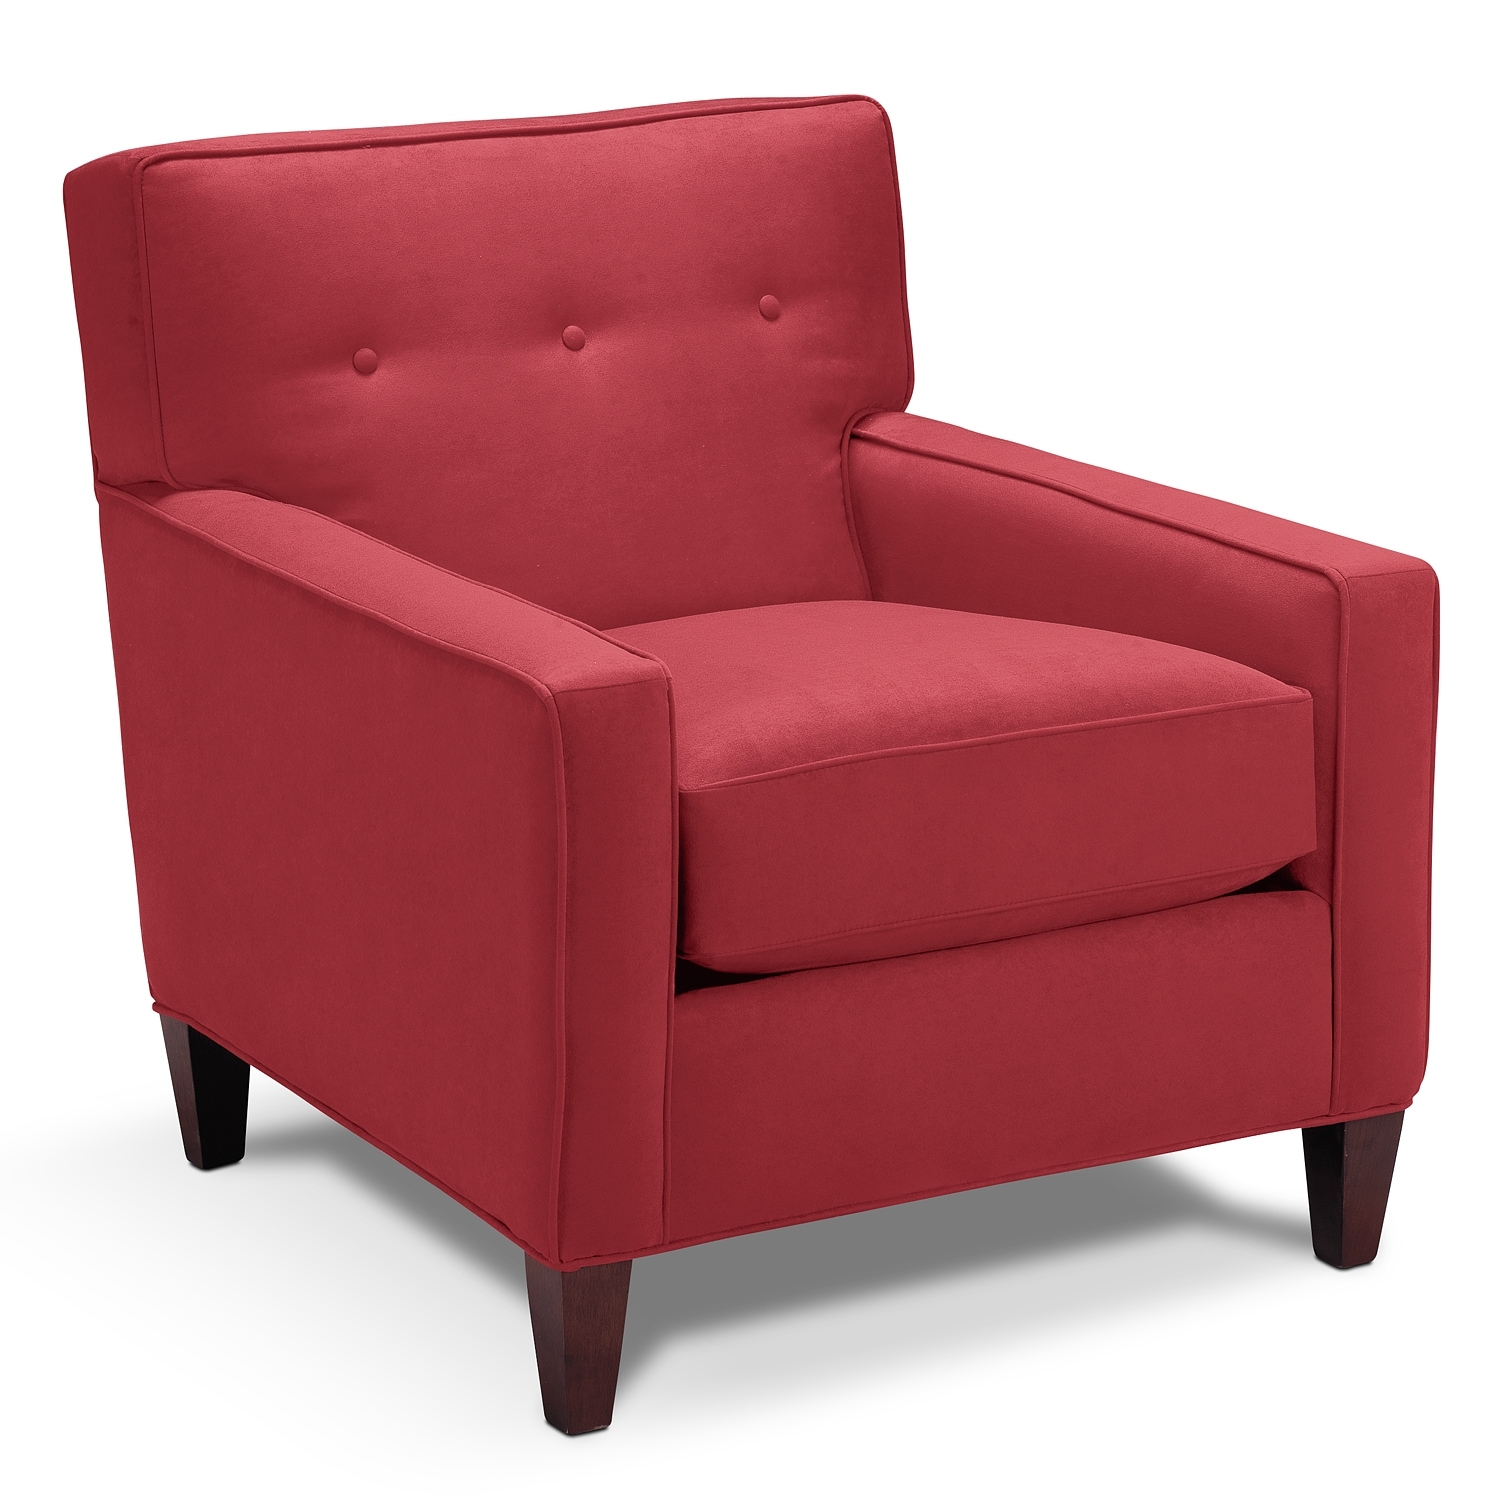 Soho upholstery accent chair value city furniture for Living room chairs